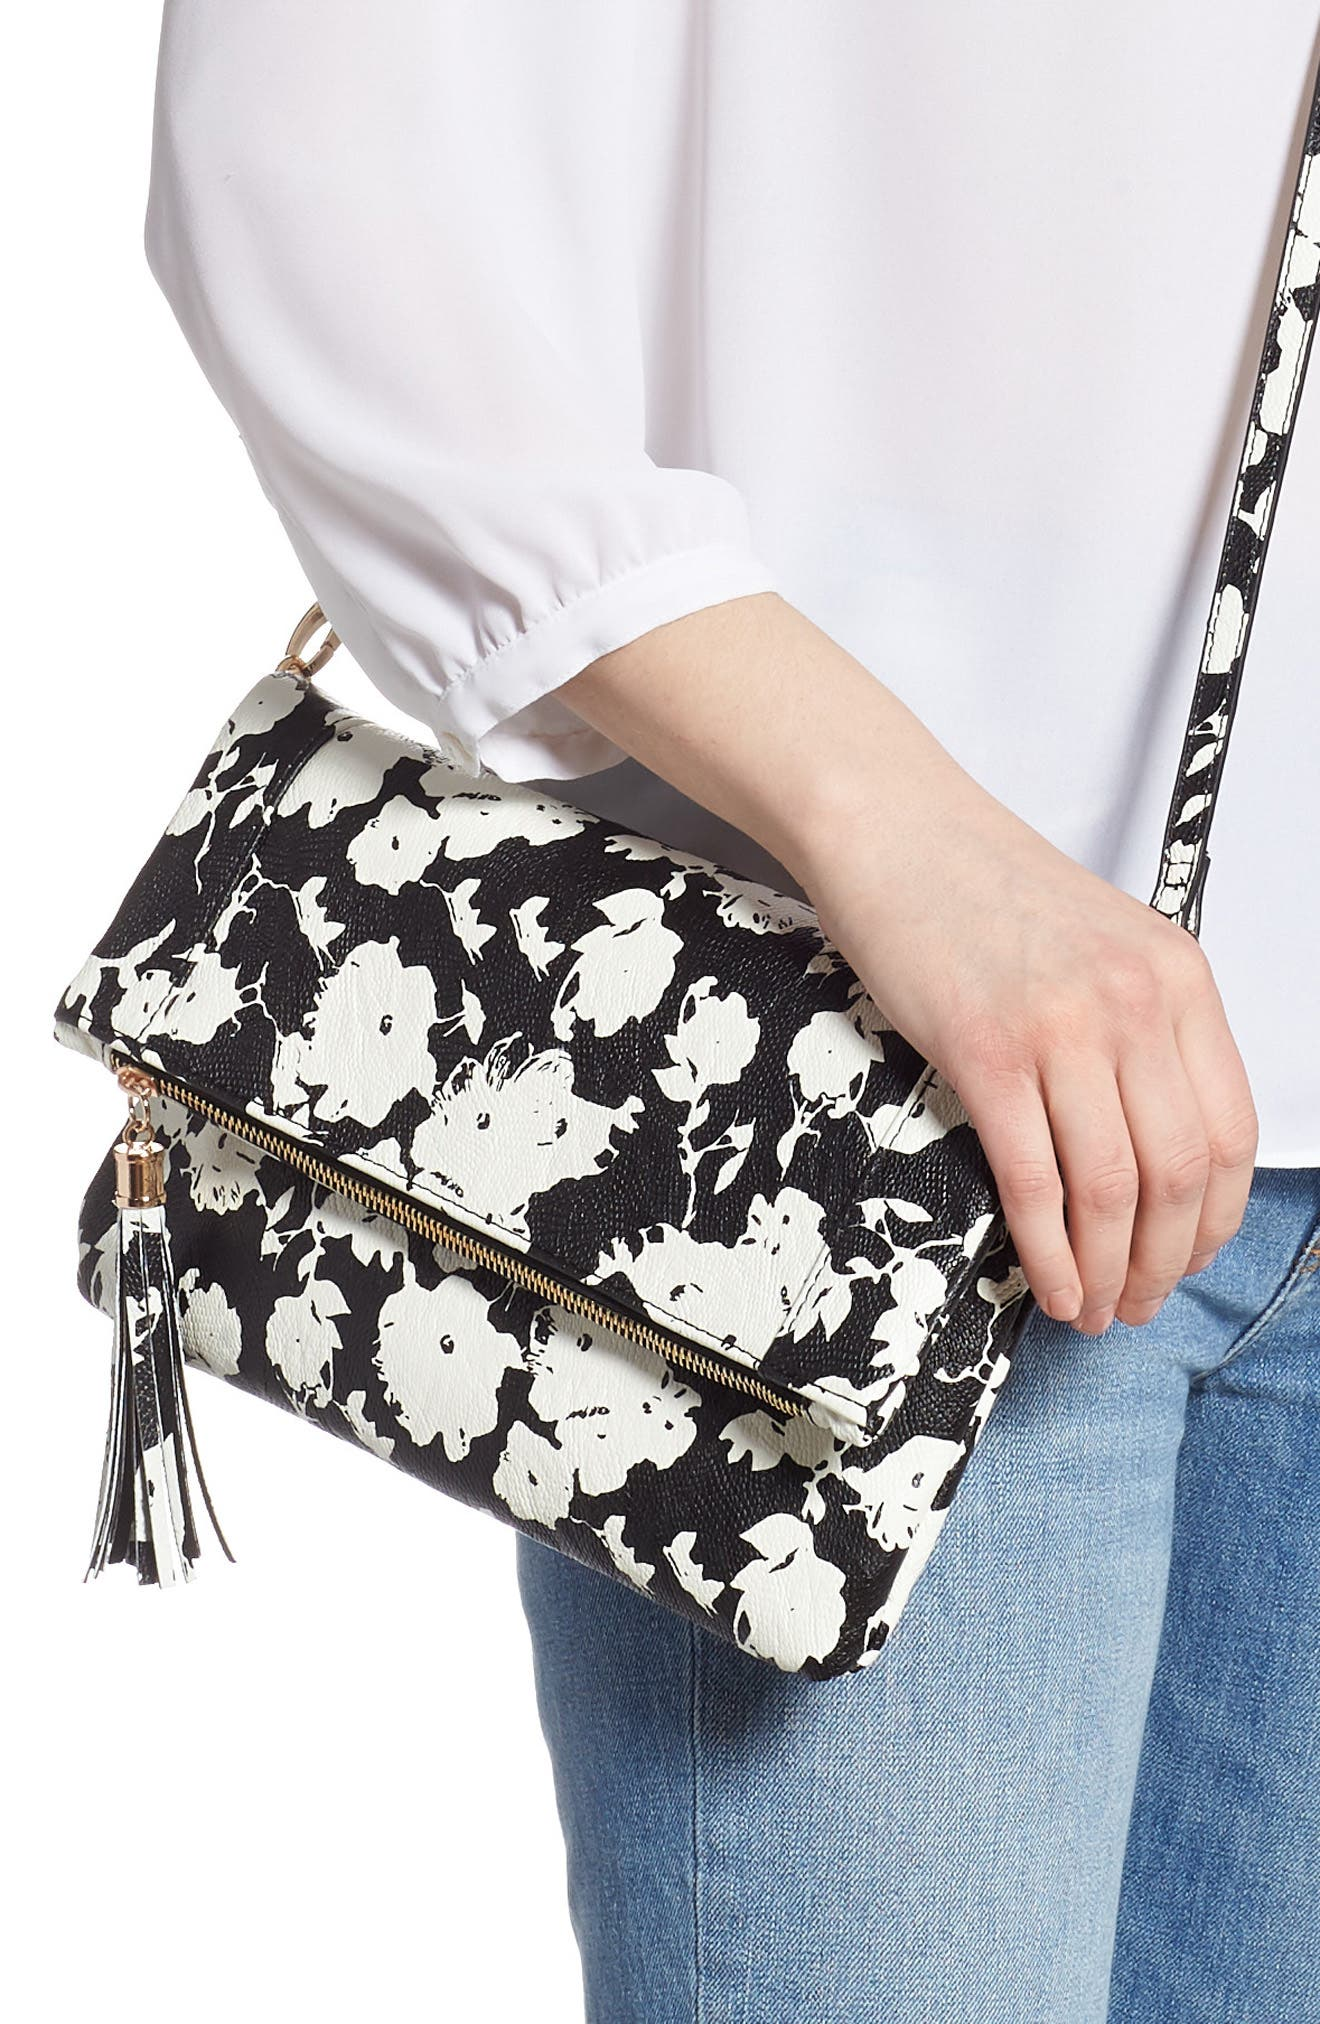 SOLE SOCIETY, 'Tasia' Print Foldover Clutch, Alternate thumbnail 2, color, BLACK FLORAL